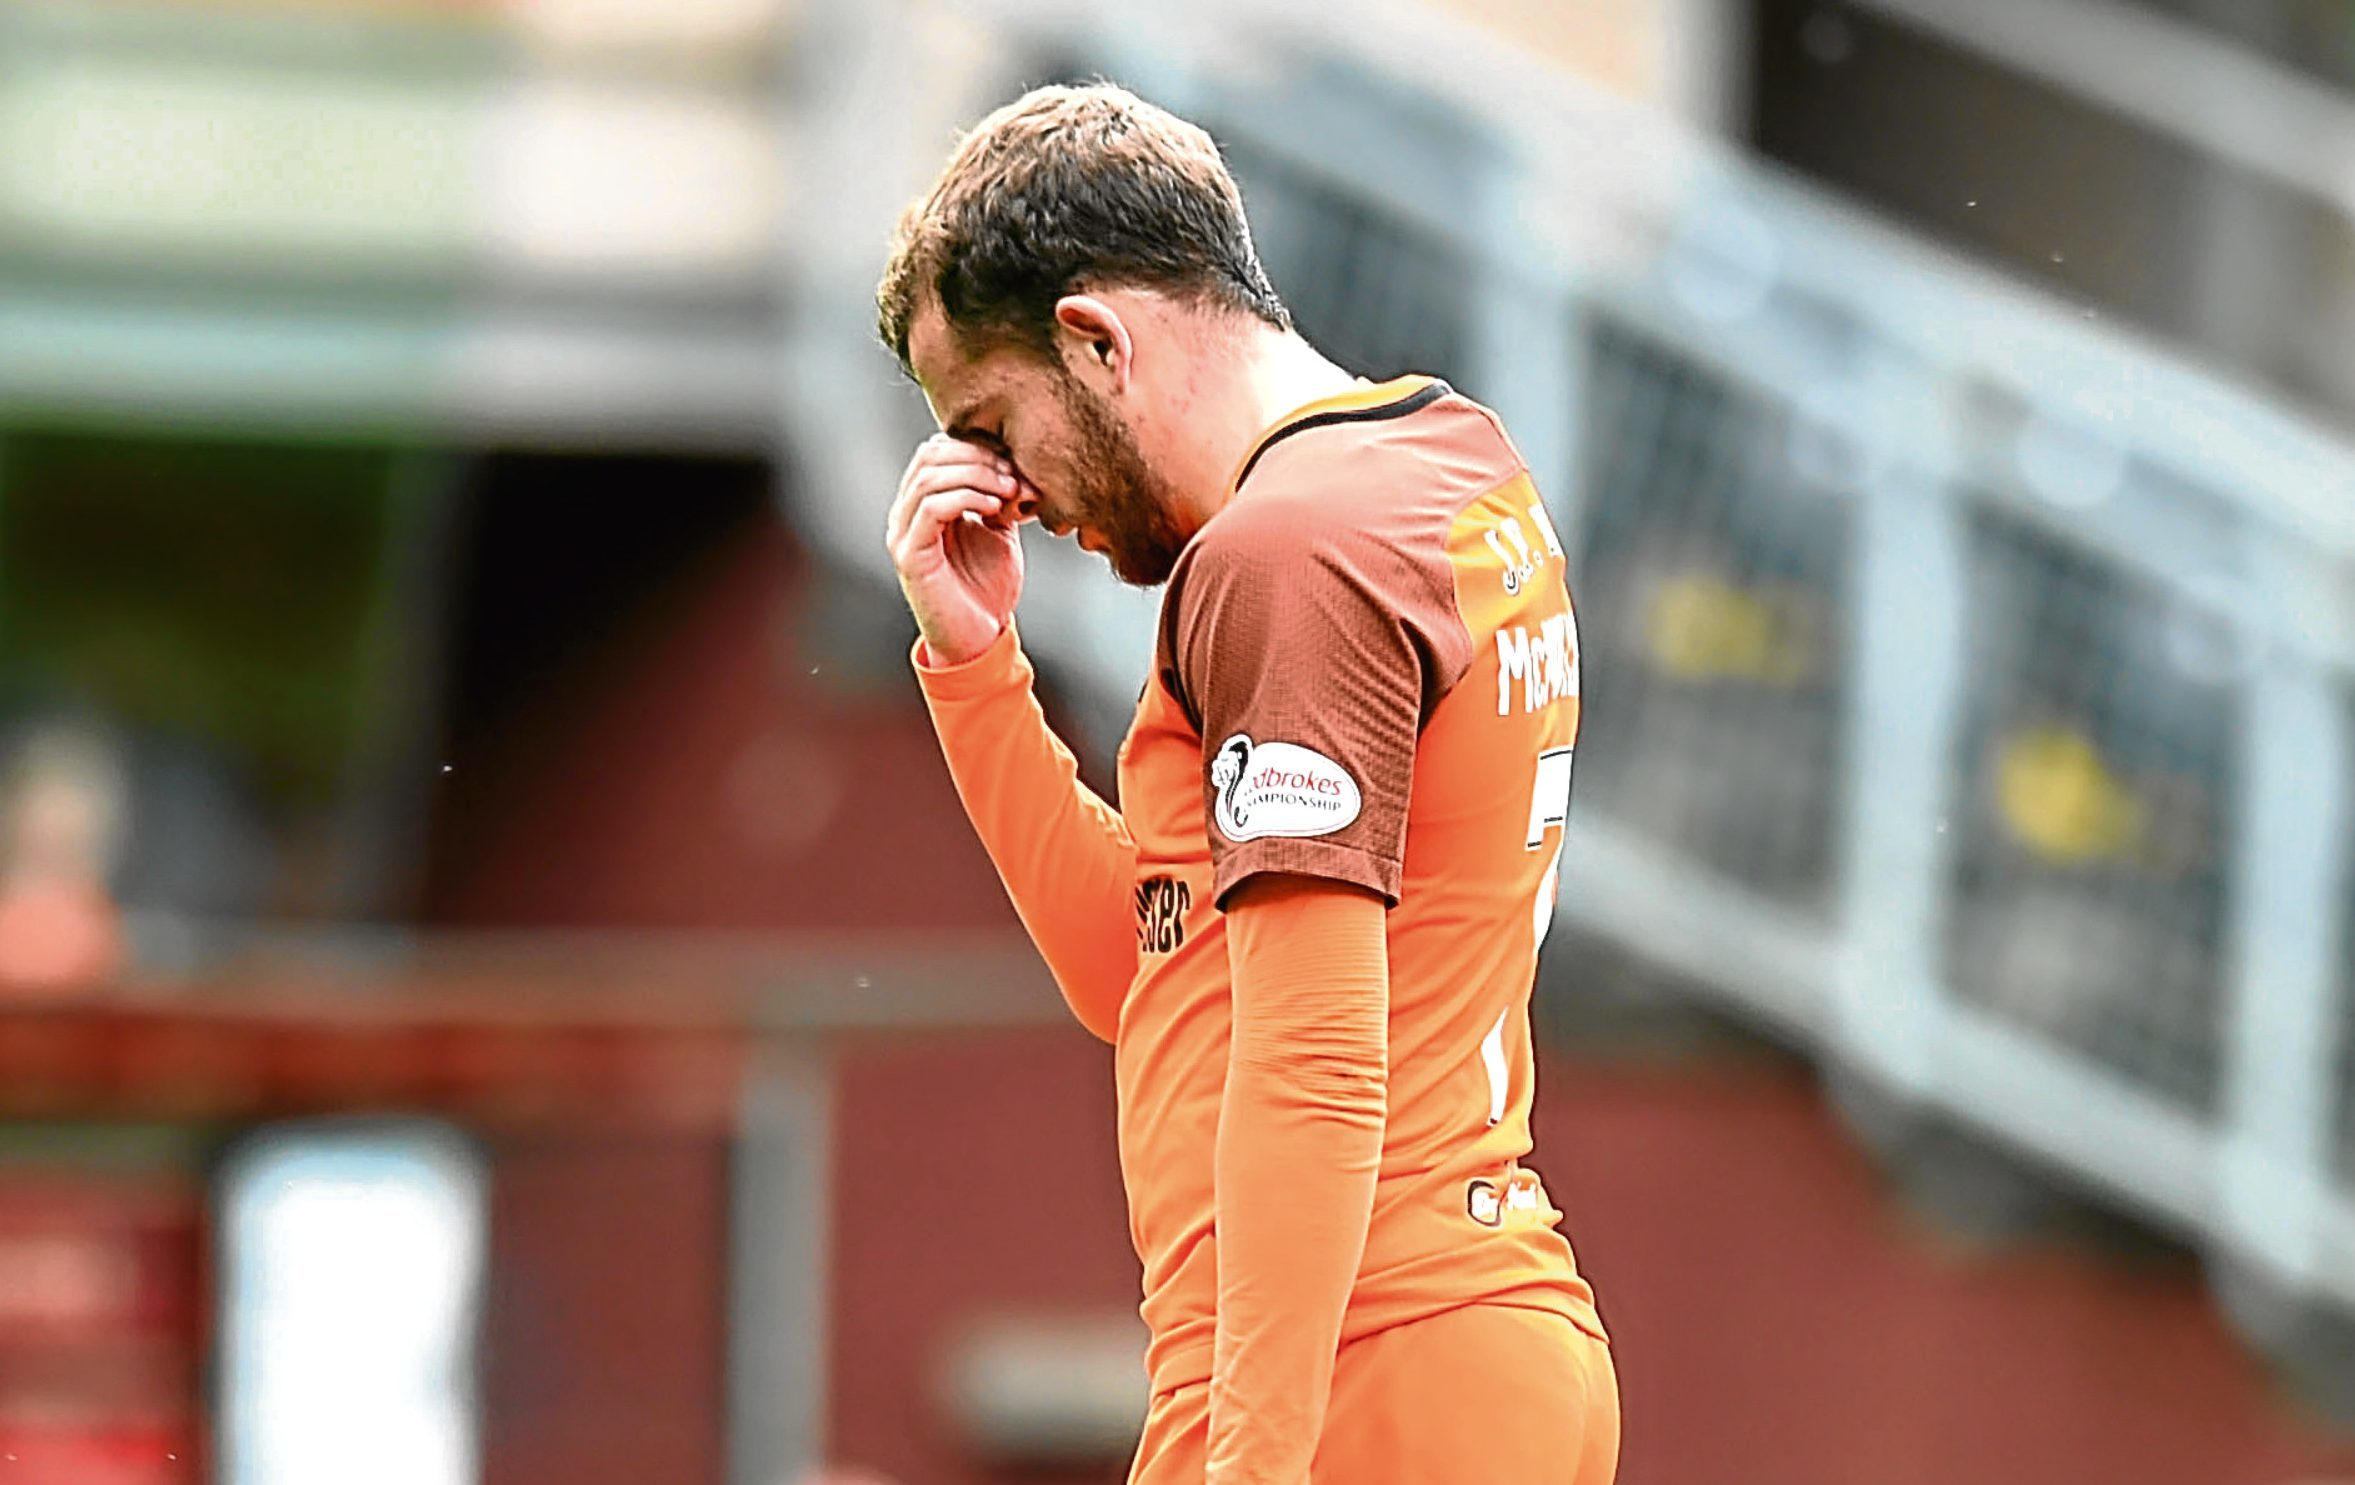 Dundee United's Paul McMullan cuts a dejected figure as he is sent off for an early bath after his sending-off offence.